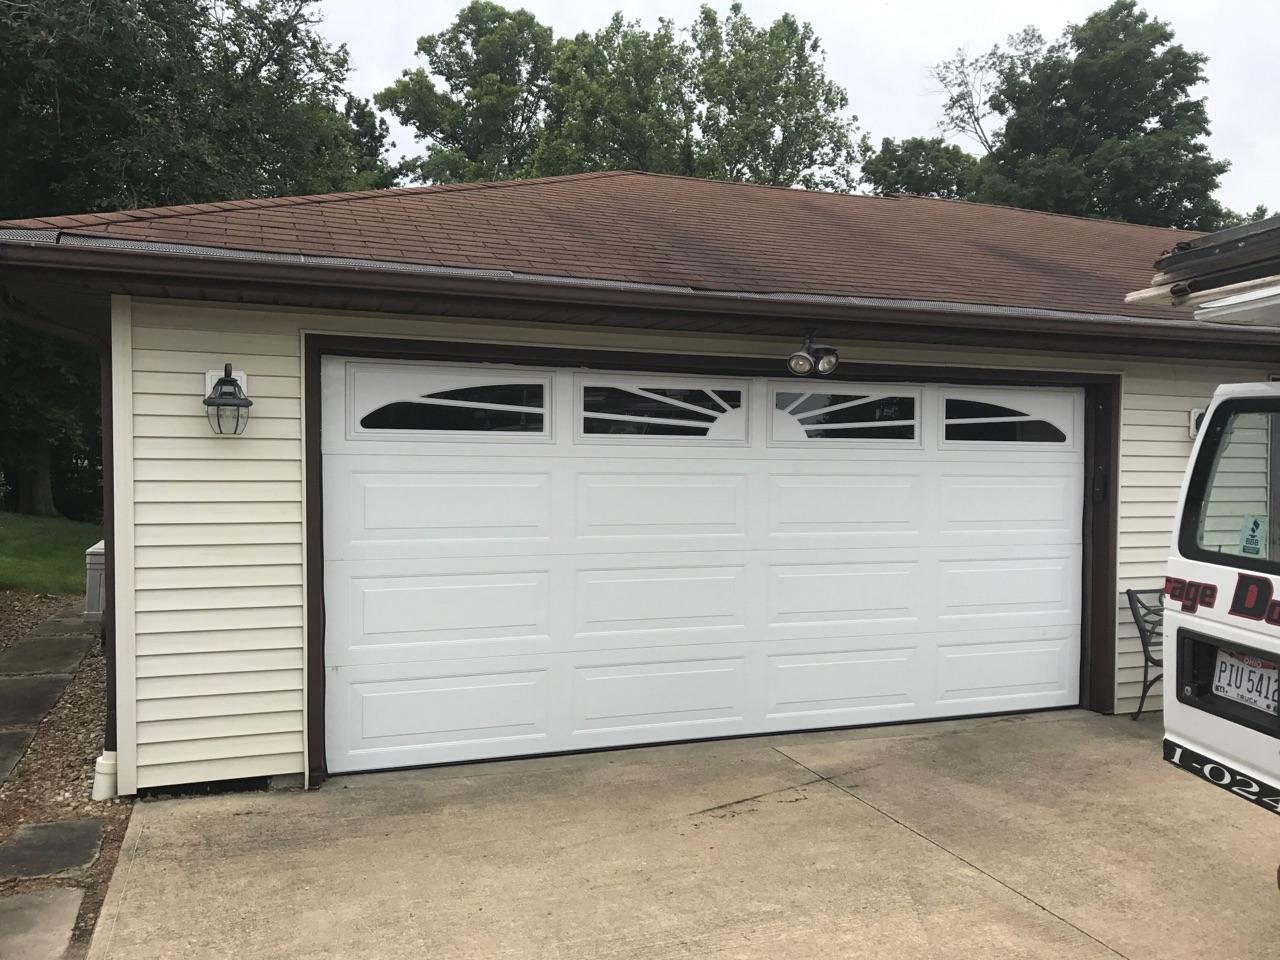 new replacement garage door by kent garage doors